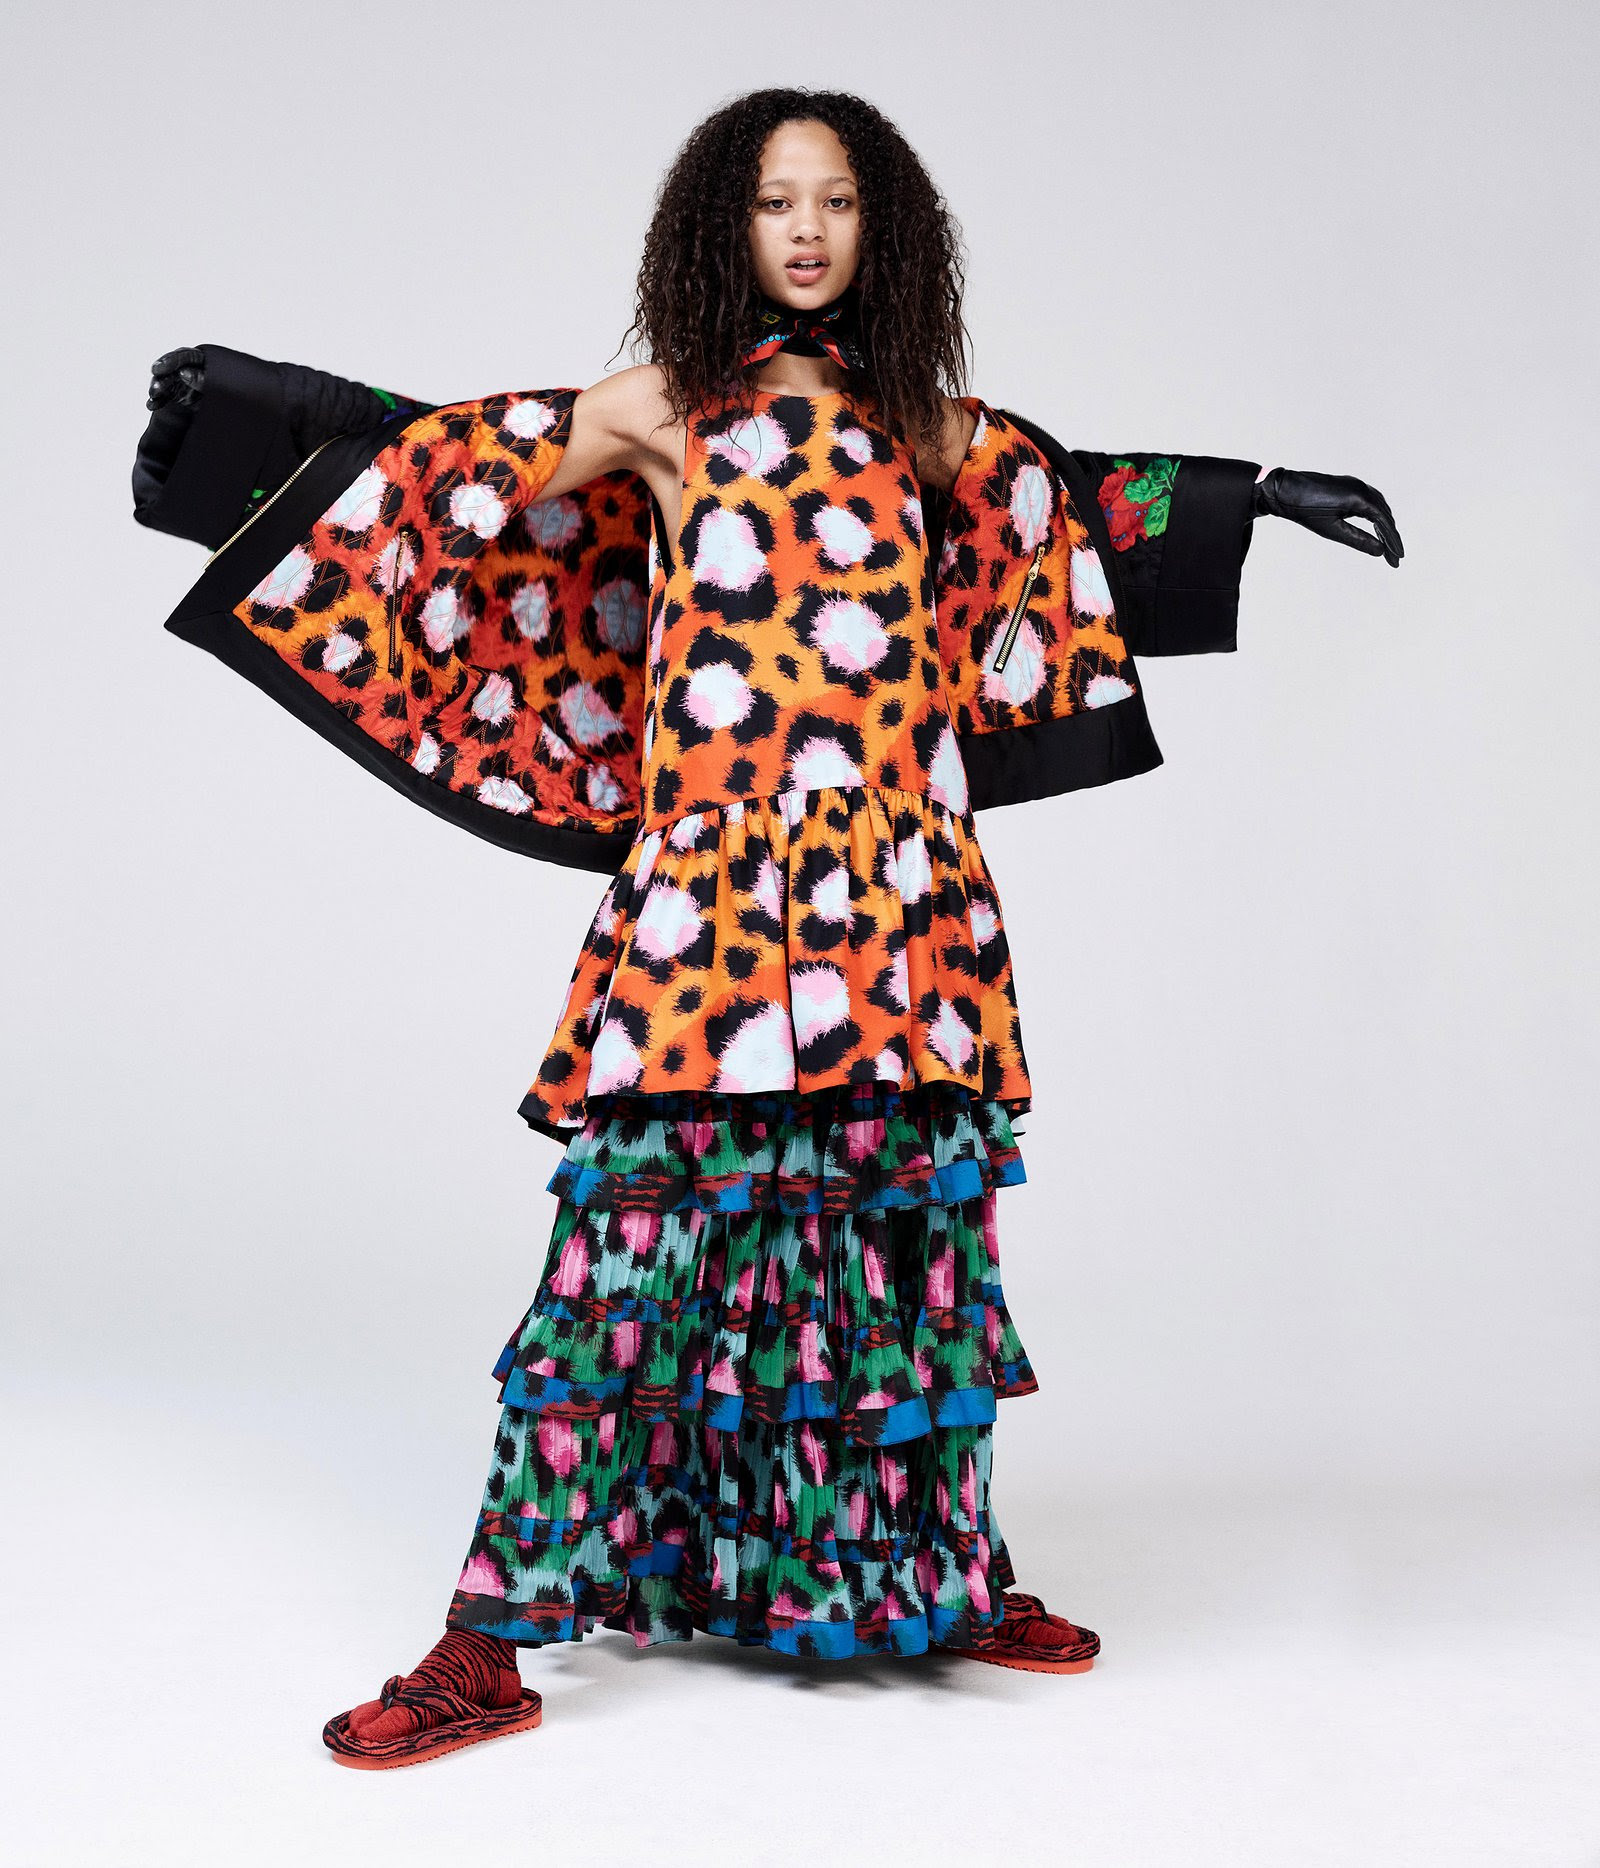 http://media.vogue.com/r/w_1600//wp-content/uploads/2016/10/07/12-kenzo-hm-lookbook.jpg